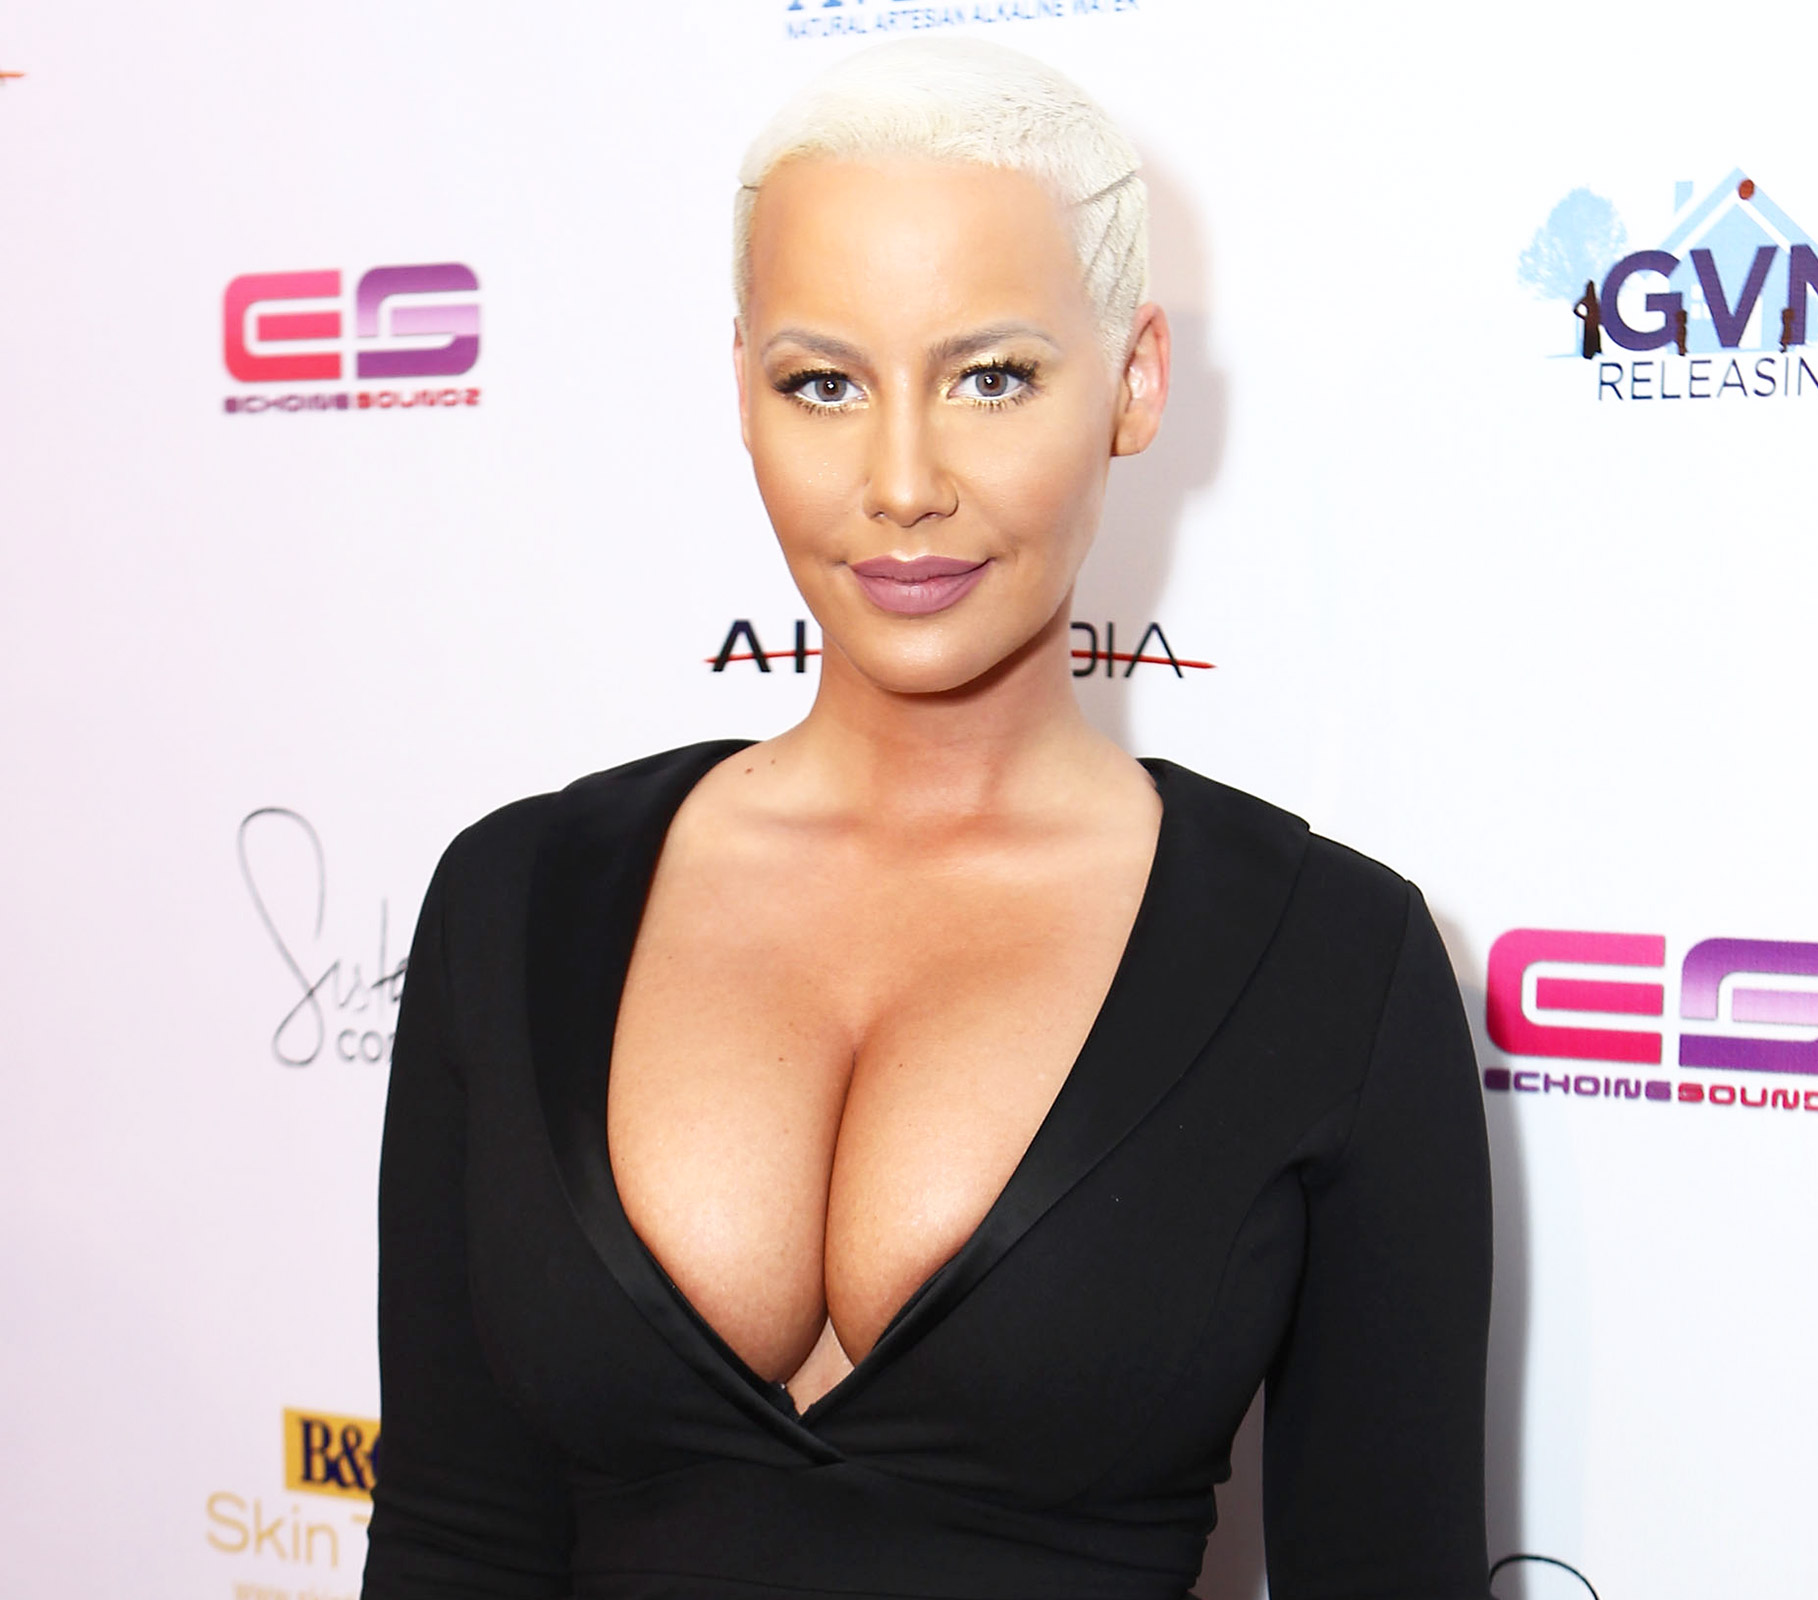 ifandco, #ifandco, #AmberRose, Amber Rose, #PureTruthLLc, Pure Truth LLC, #PureTruthDJs, Pure Truth Djs, #PureTruthLLC, Pure Truth LLC, #PureTruth, Pure Truth, #HipHopDX, HIp Hop DX, #billboard, billboard, #AmberRose, Amber Rose, 21 Savage, #21Savage, #music, music, #news, news, #Djs, djs